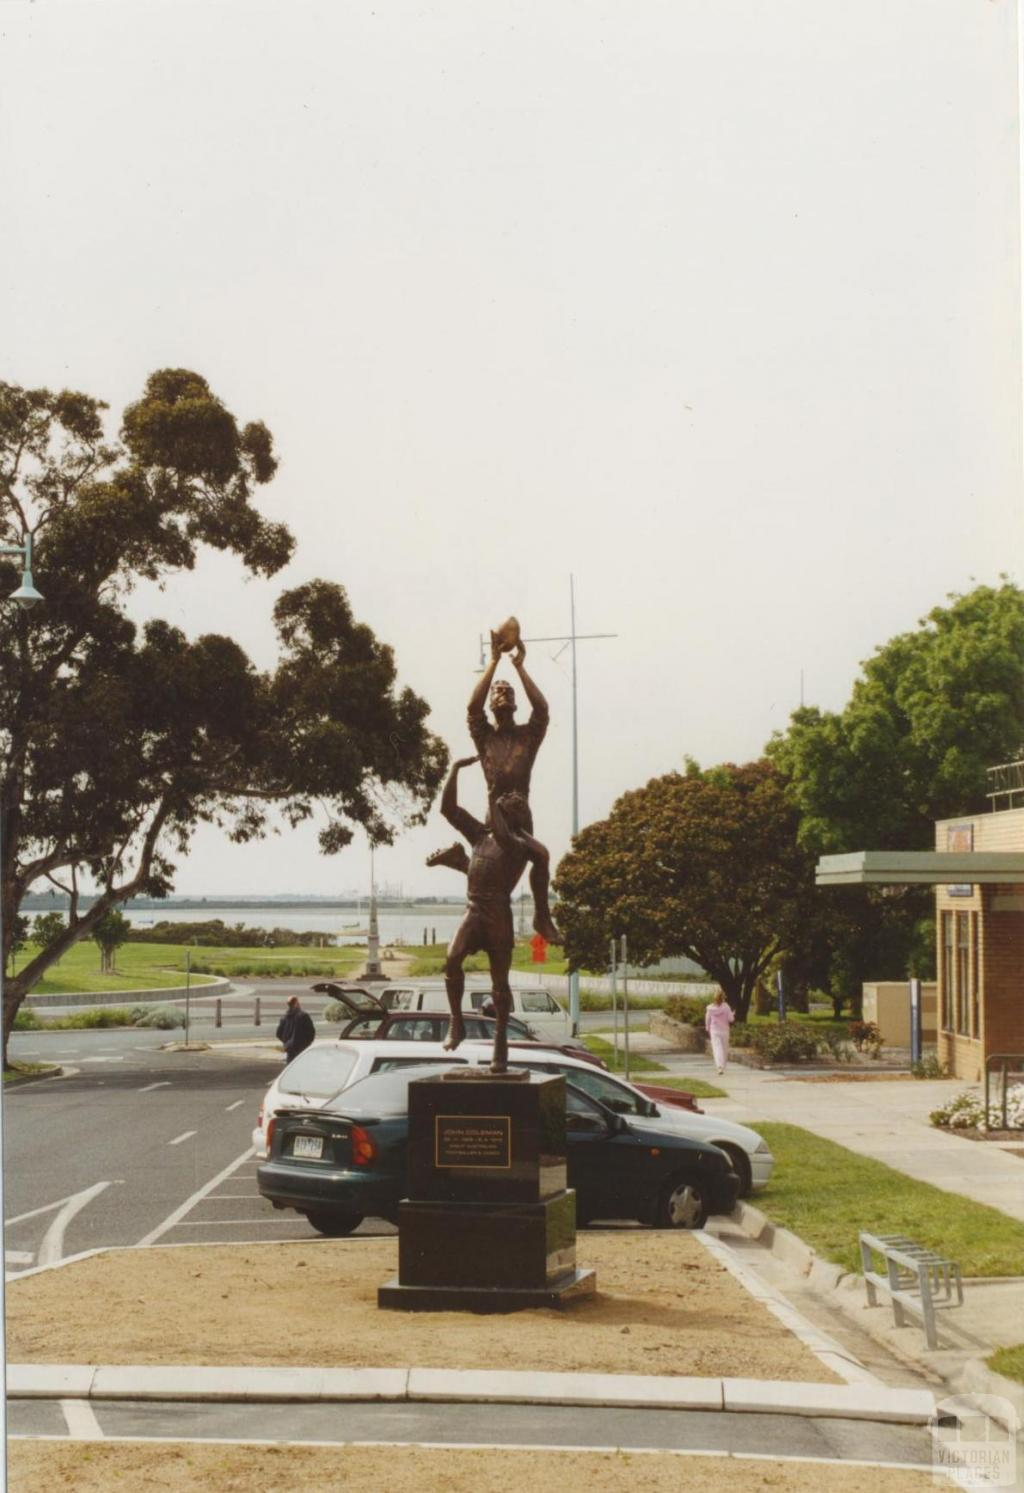 John Coleman statue, High Street, Hastings, 2005